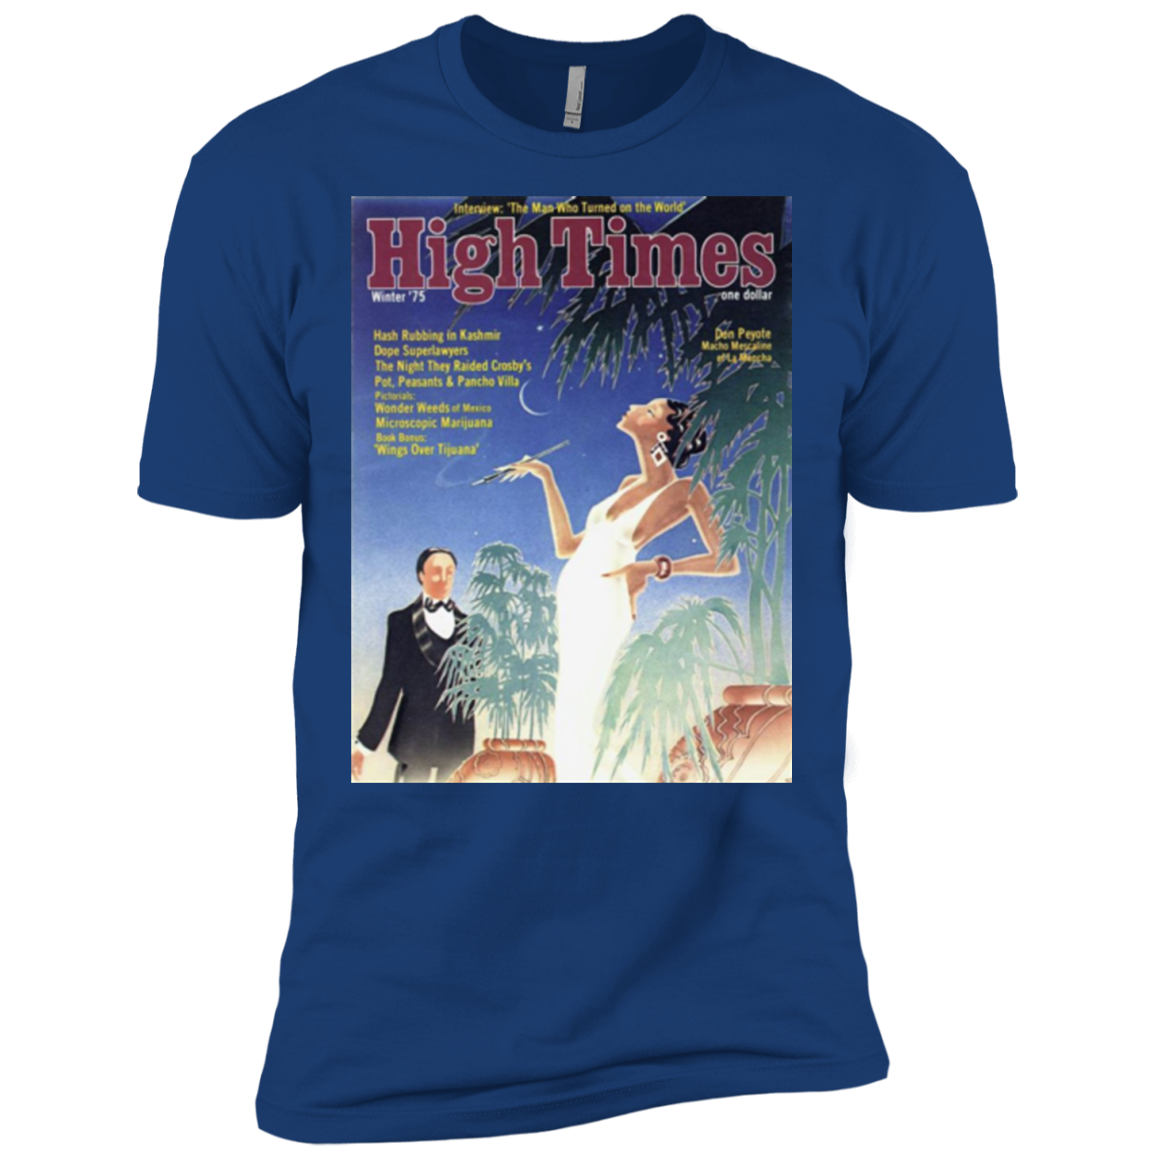 High Society T-Shirt-1975 Vintage Cover Men's T-Shirt